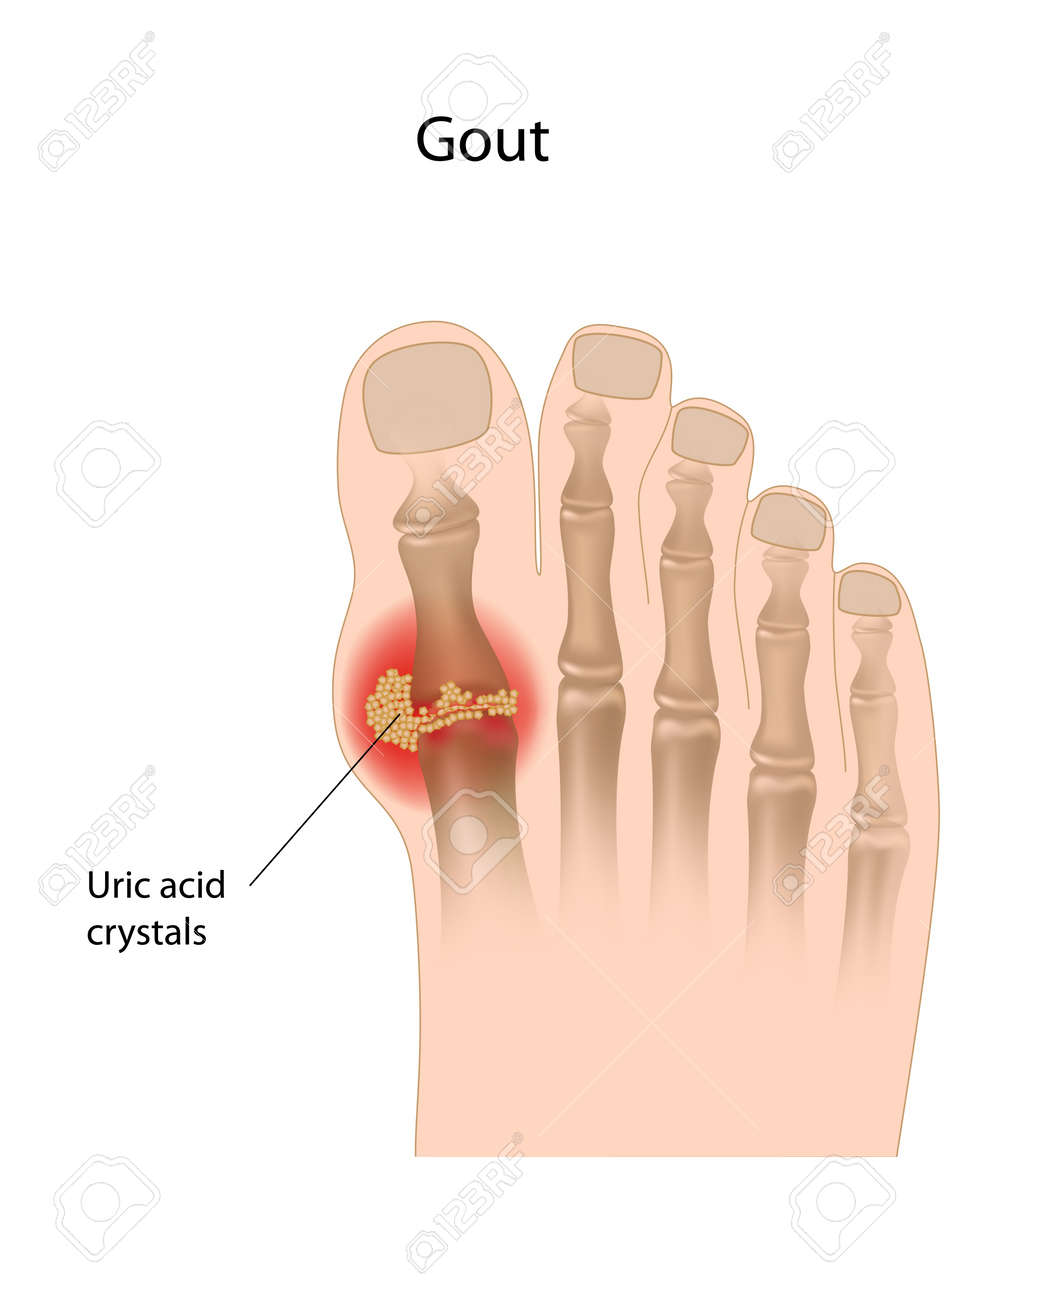 holistic cures for gout could i have gout in my big toe gout or arthritis in big toe joint